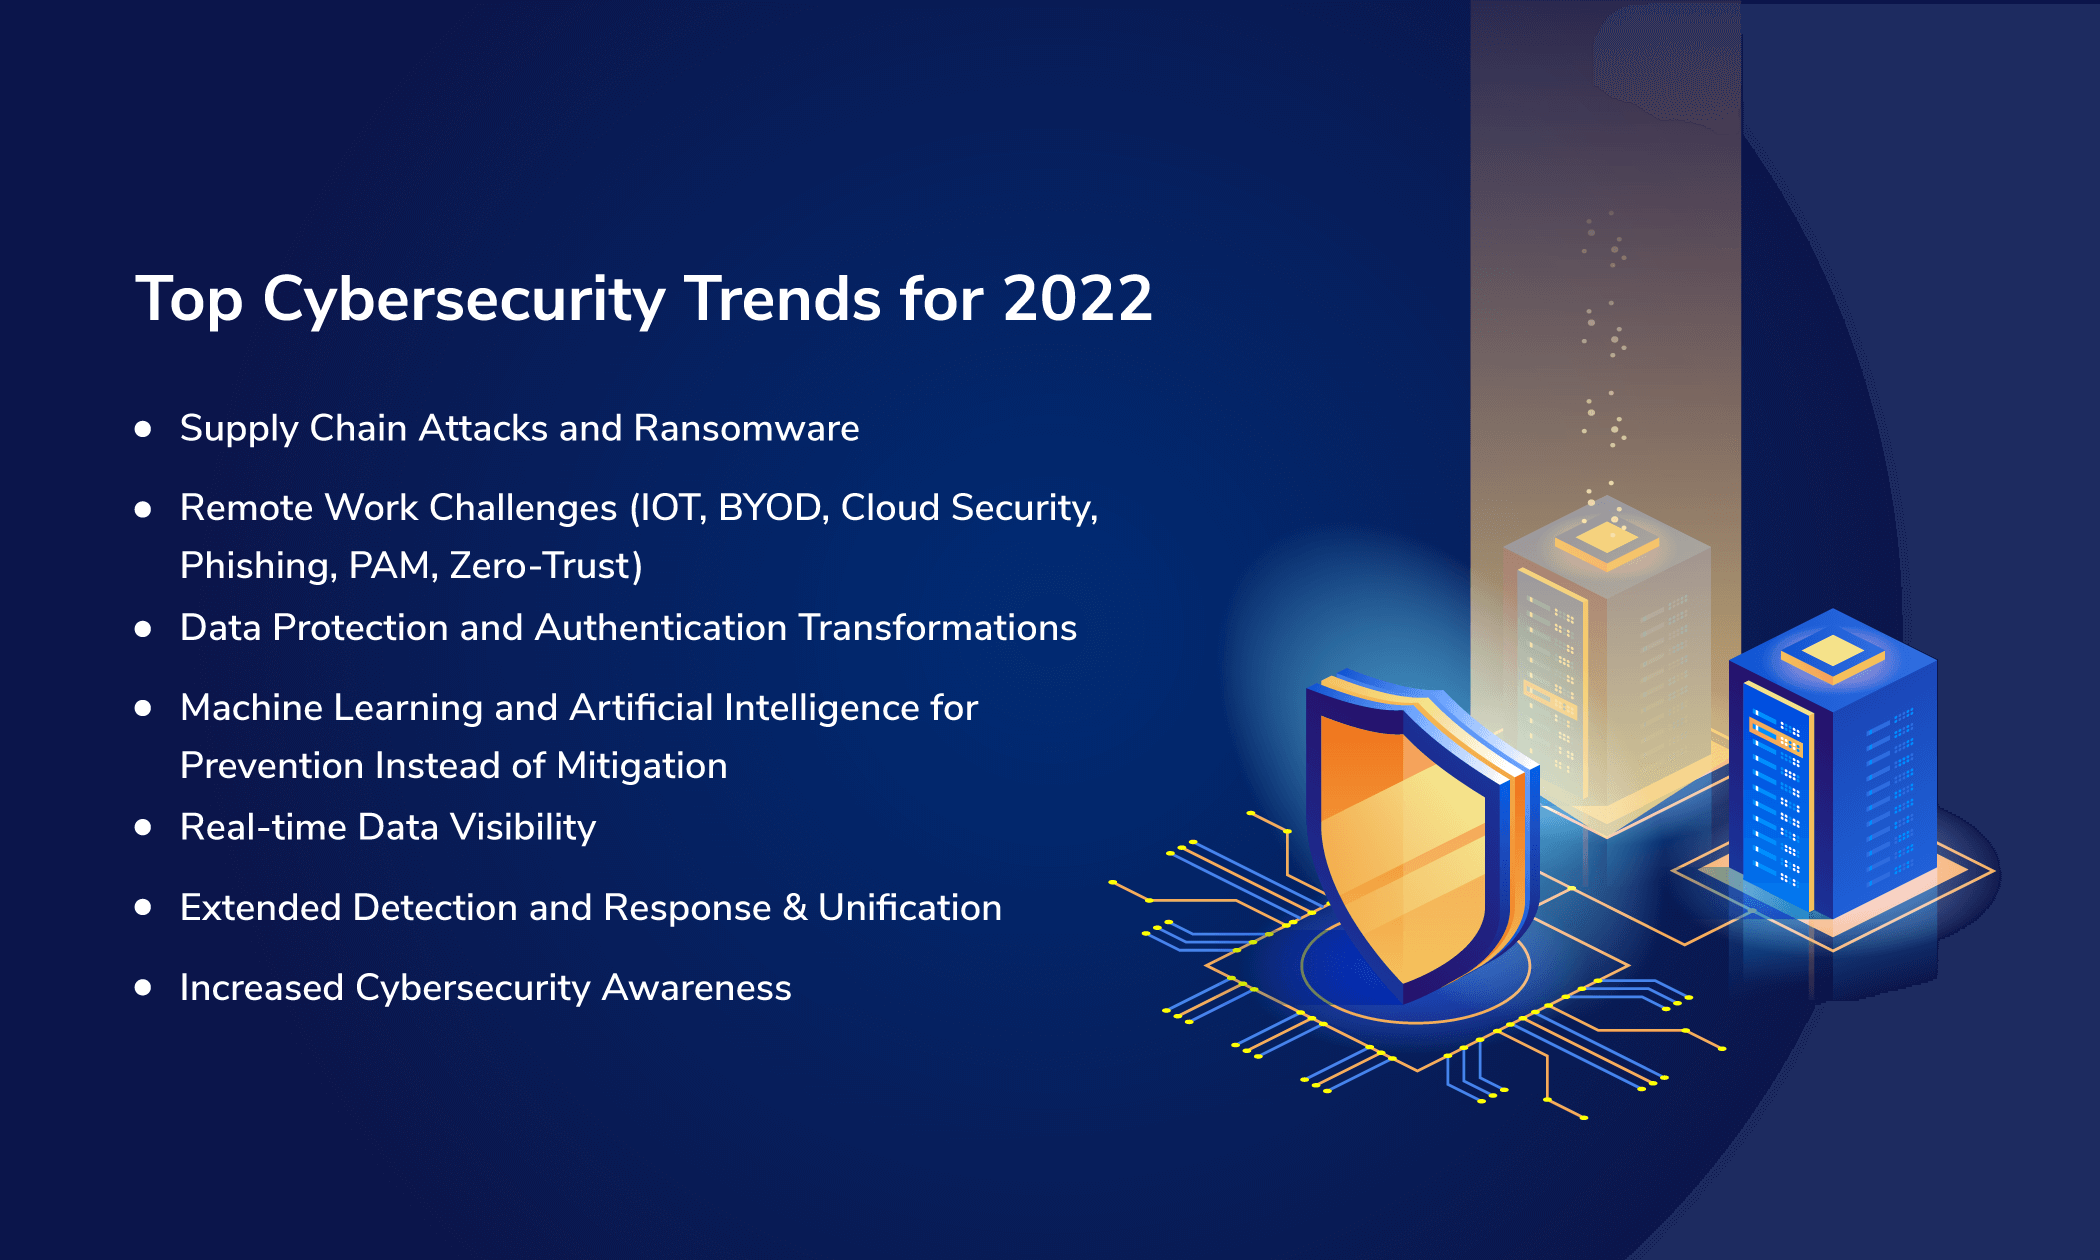 2022 cybersecurity trends